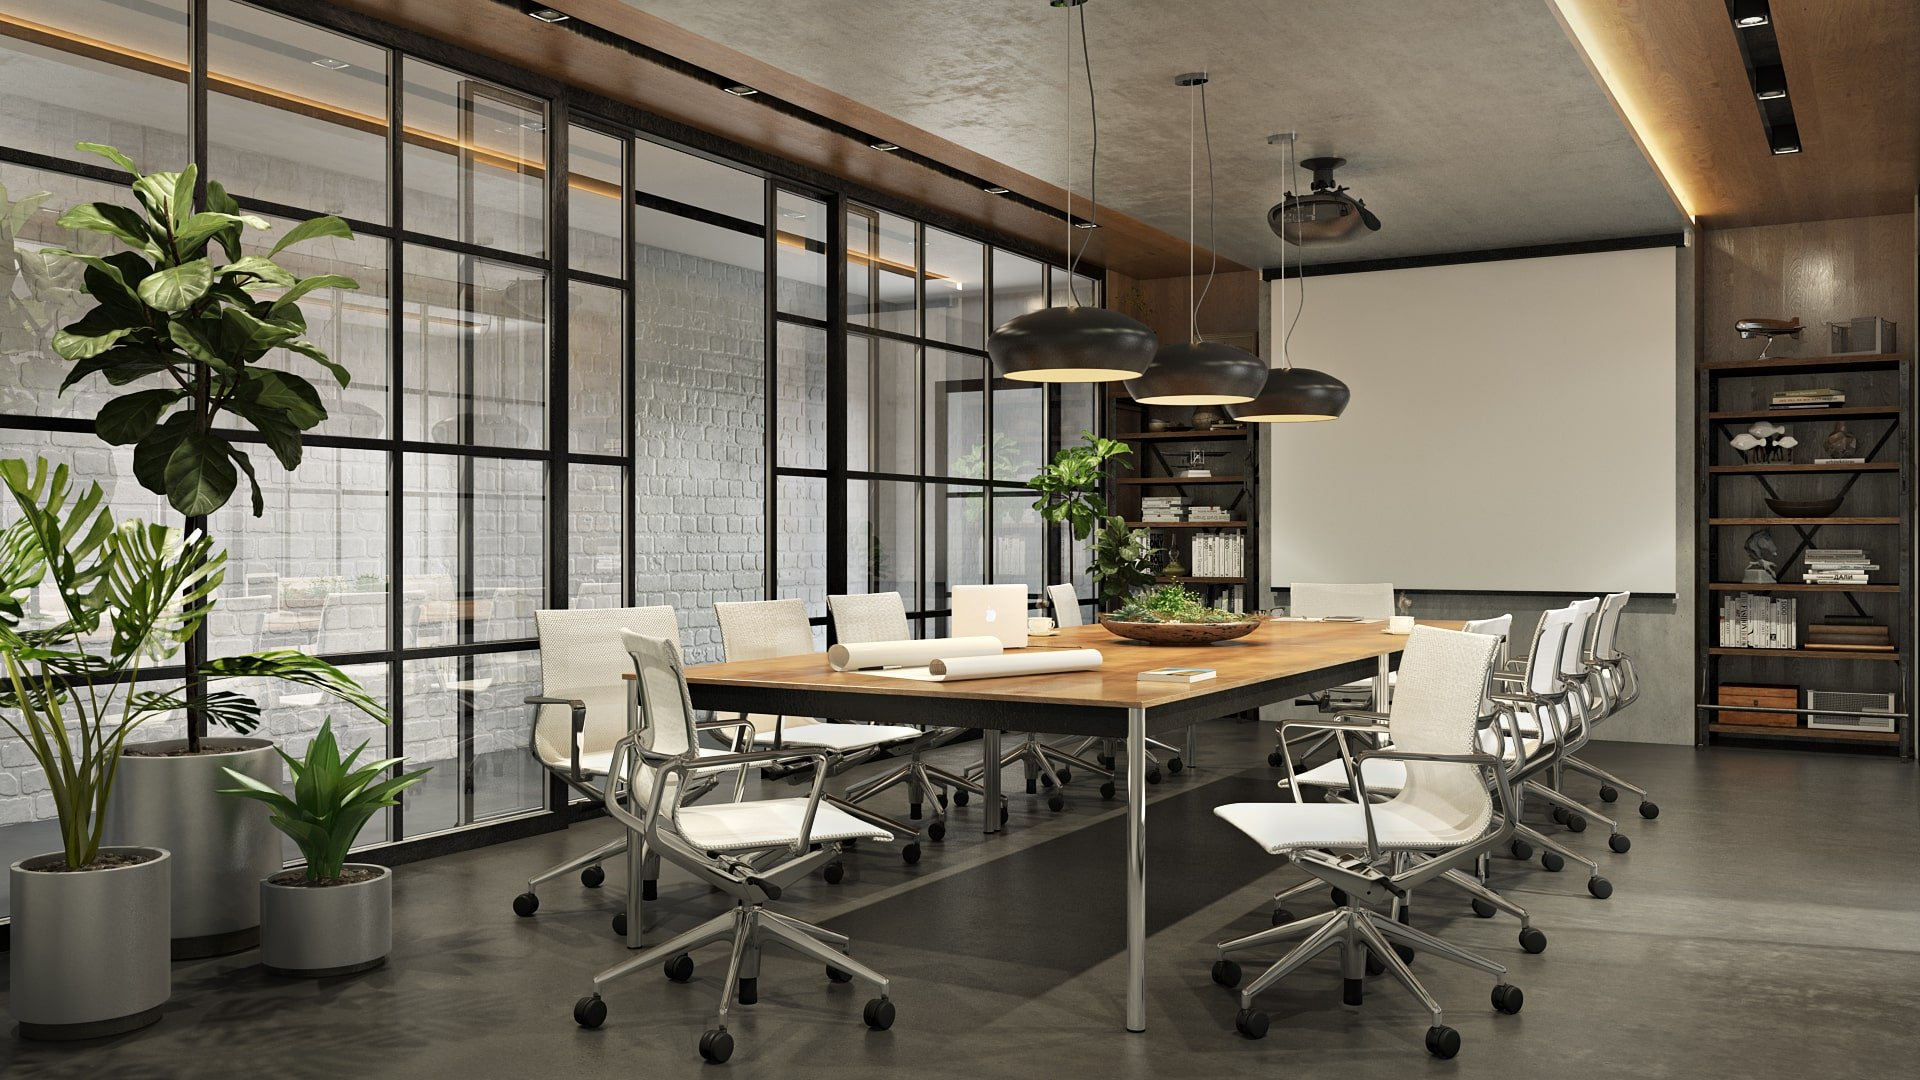 Office CG Render for Meeting Room with Refreshing Green Plants